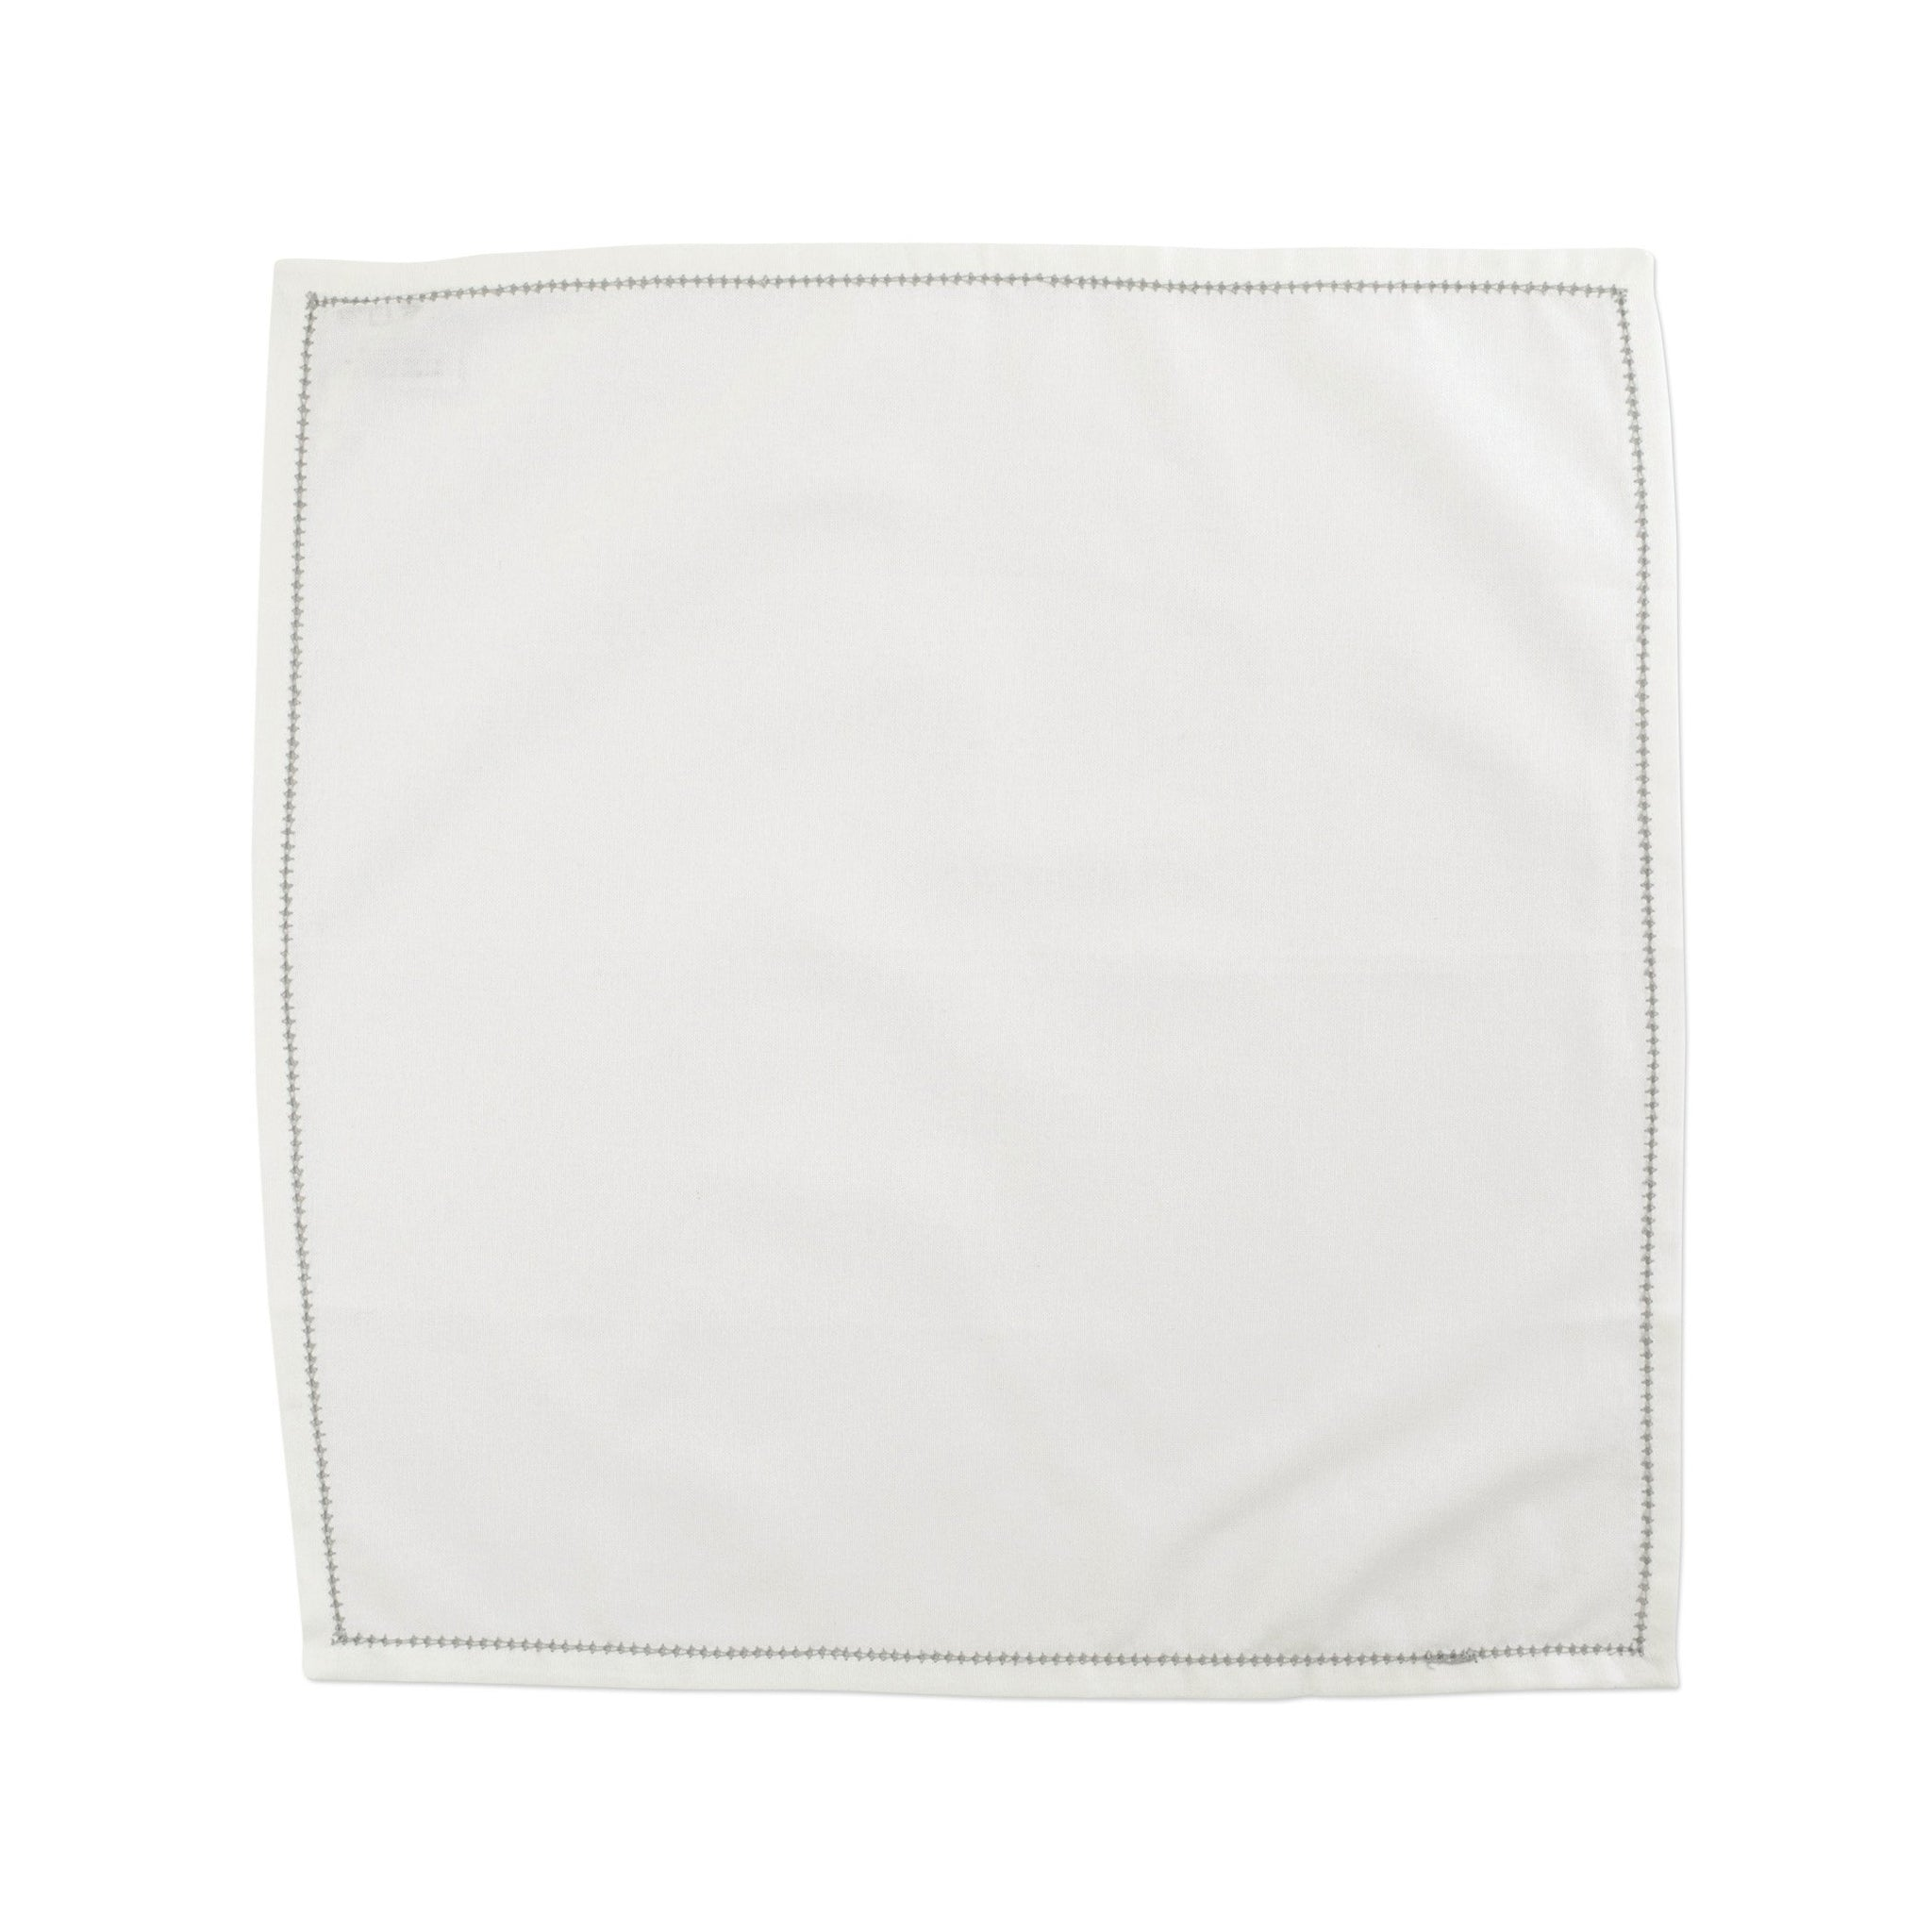 Cotone Linens Ivory Napkins with Stitching - Set of 4